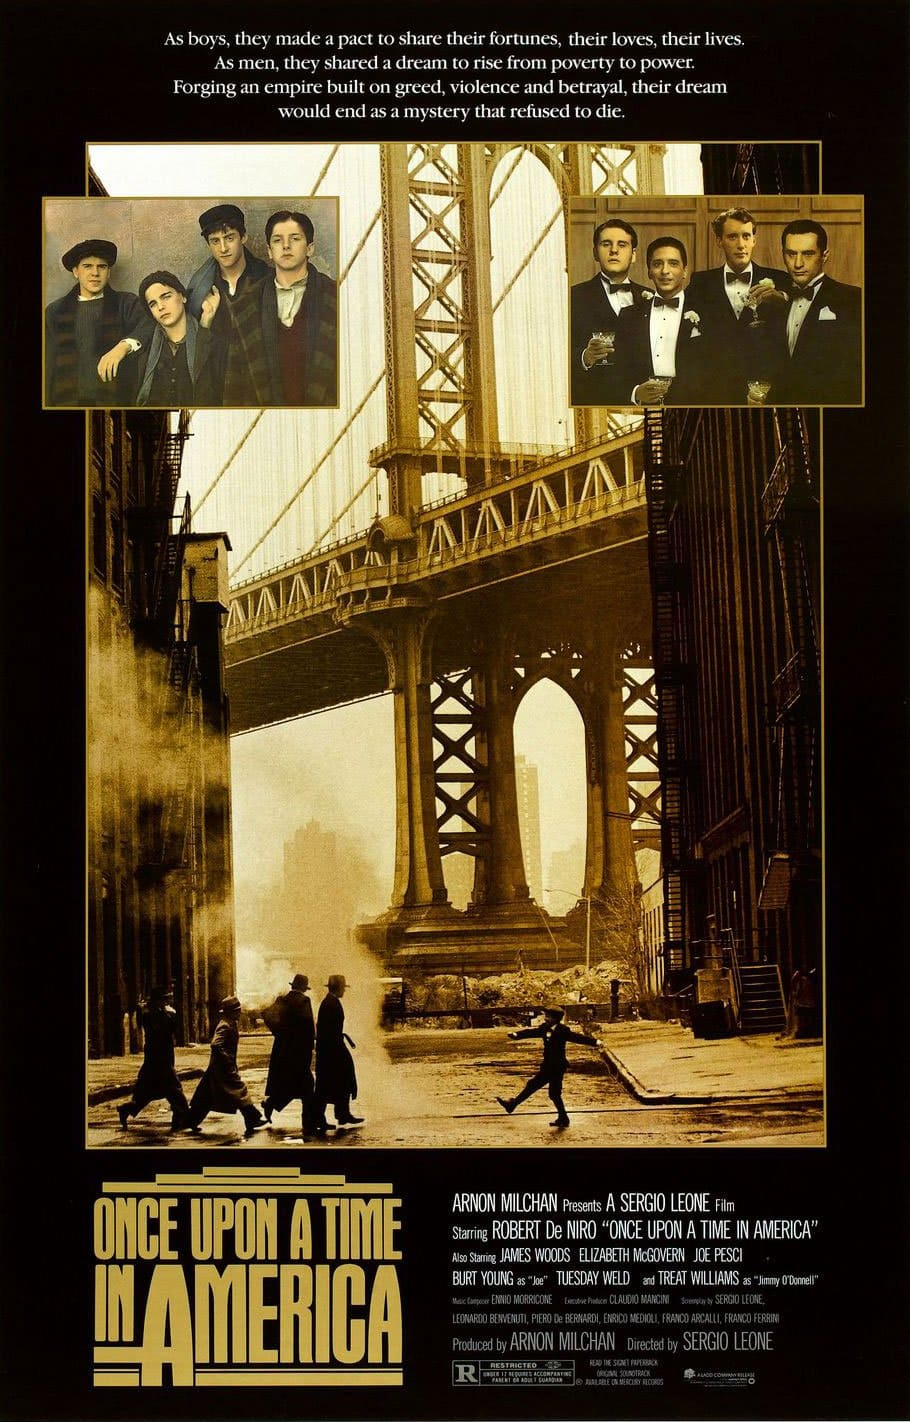 phim kinh điển once upon a time in america